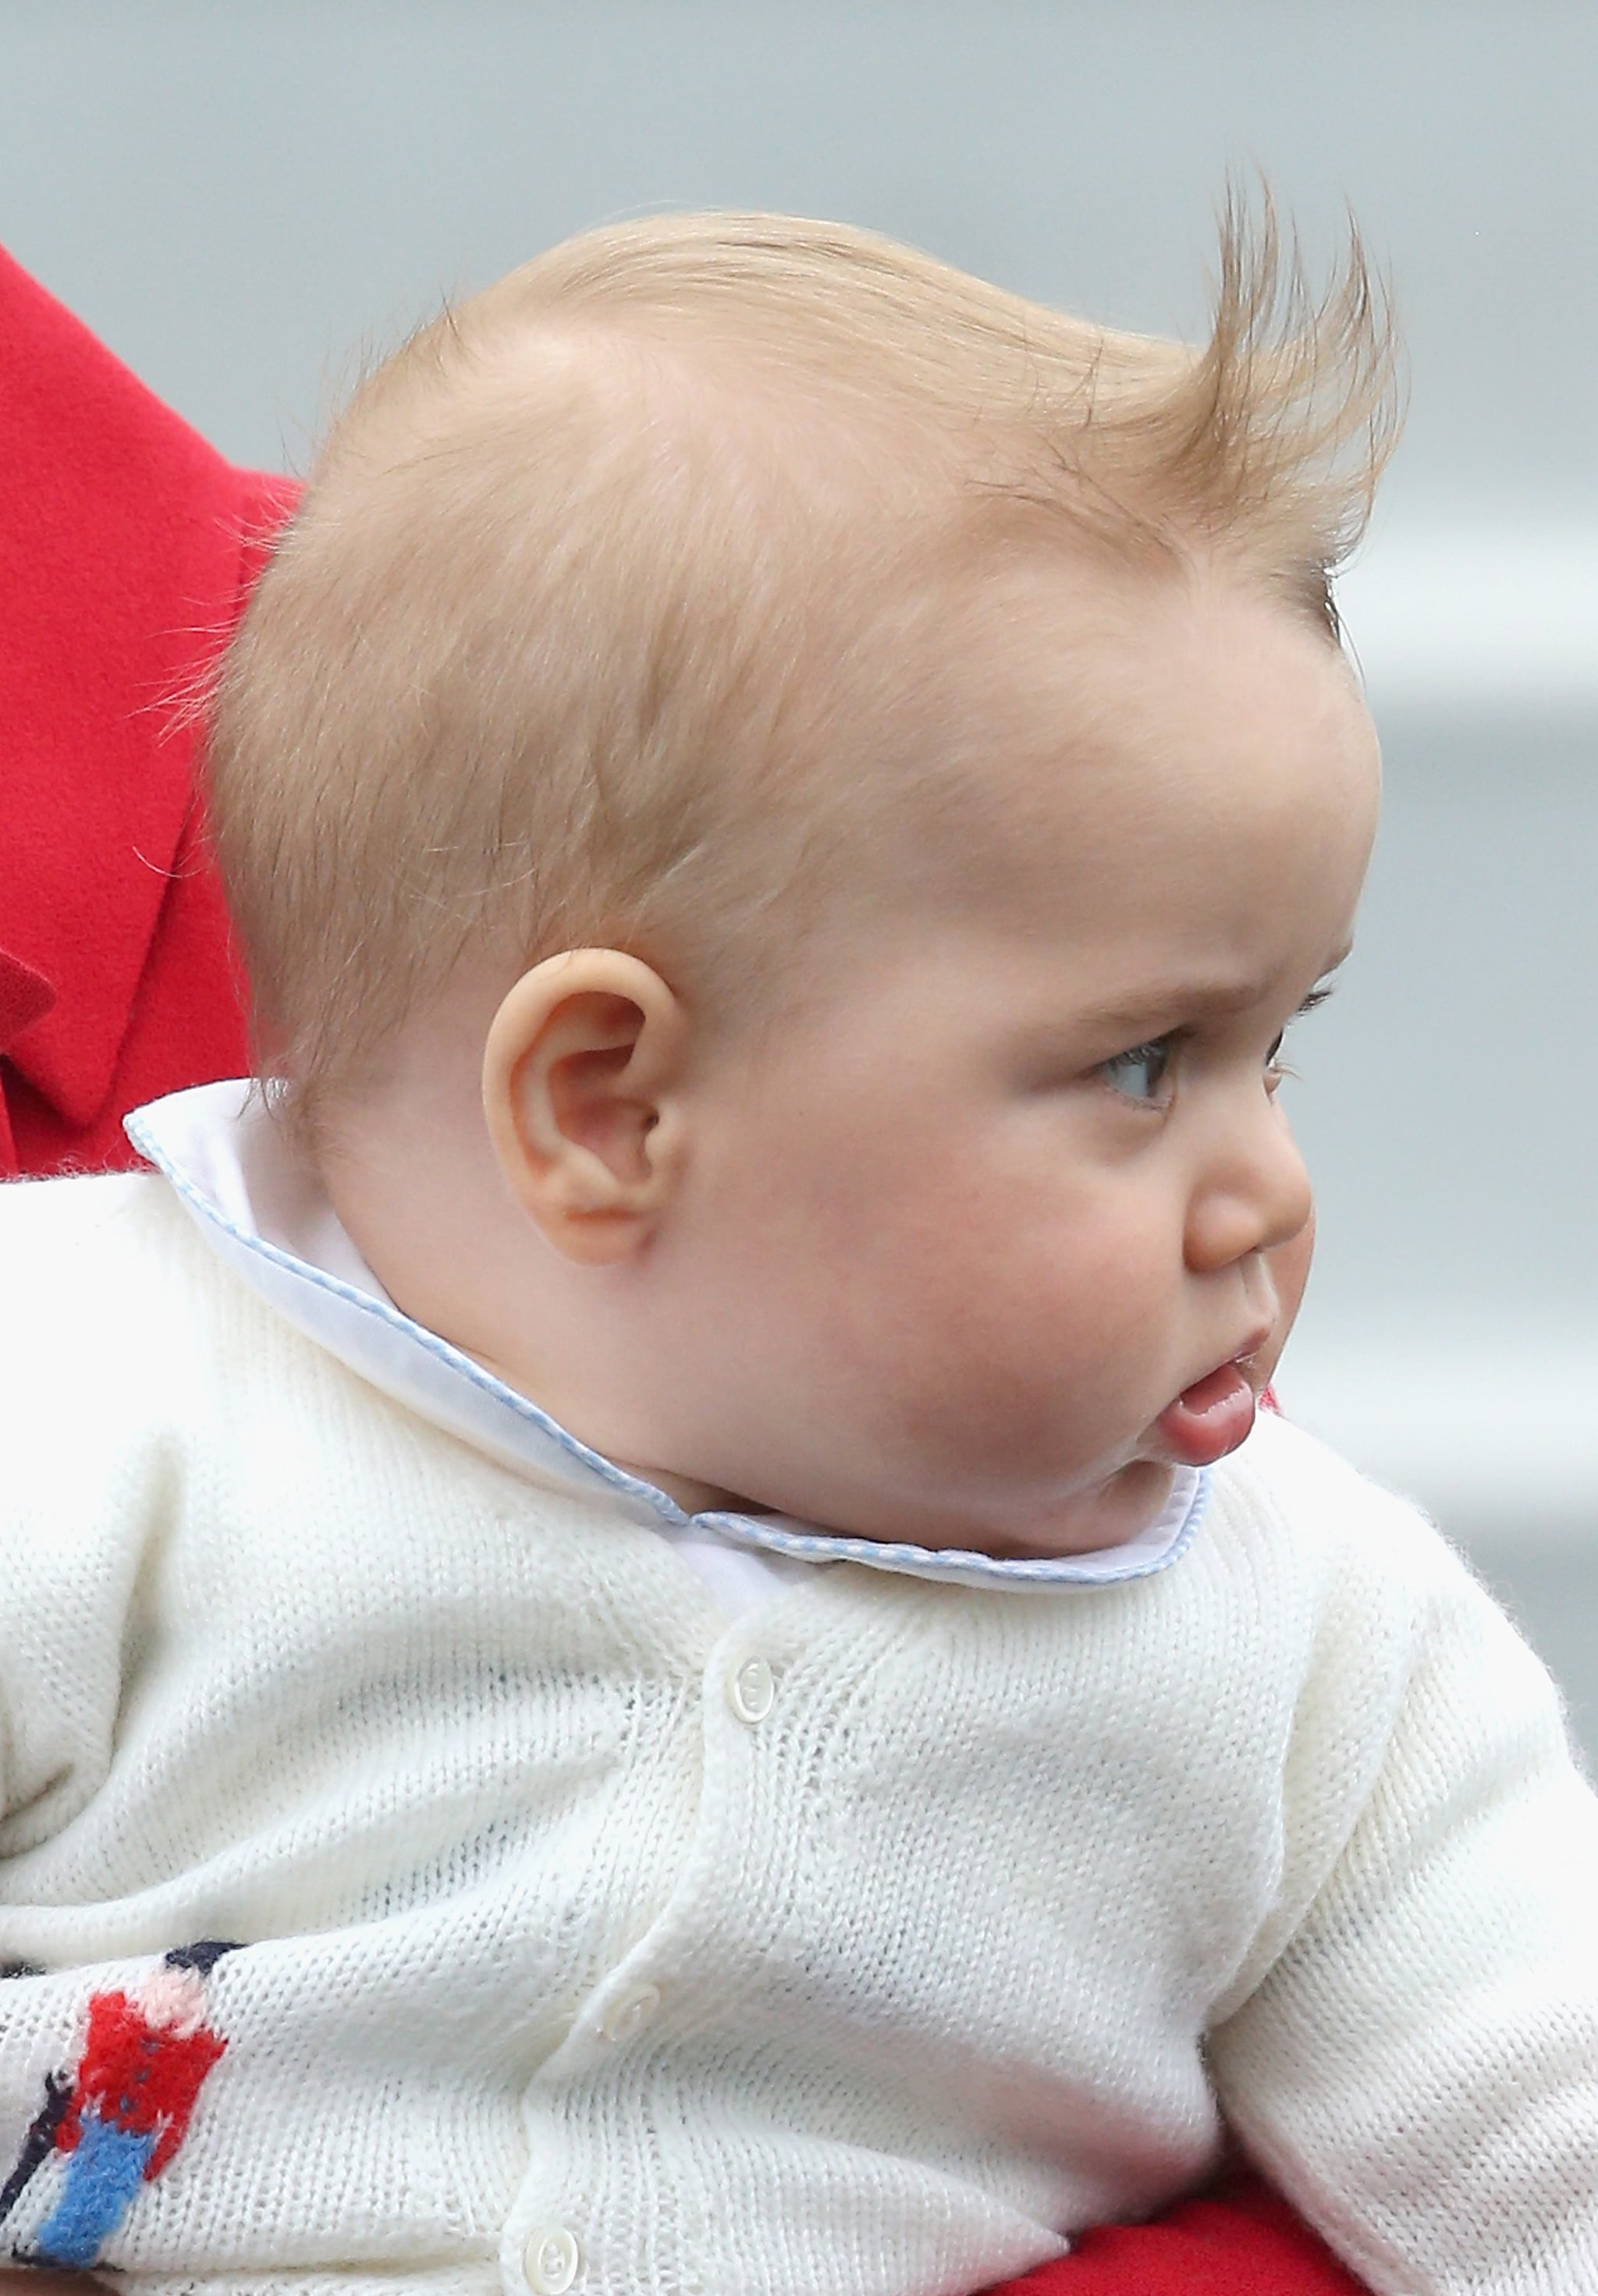 We're pretty sure the queen would not approve of this wind-induced fauxhawk.